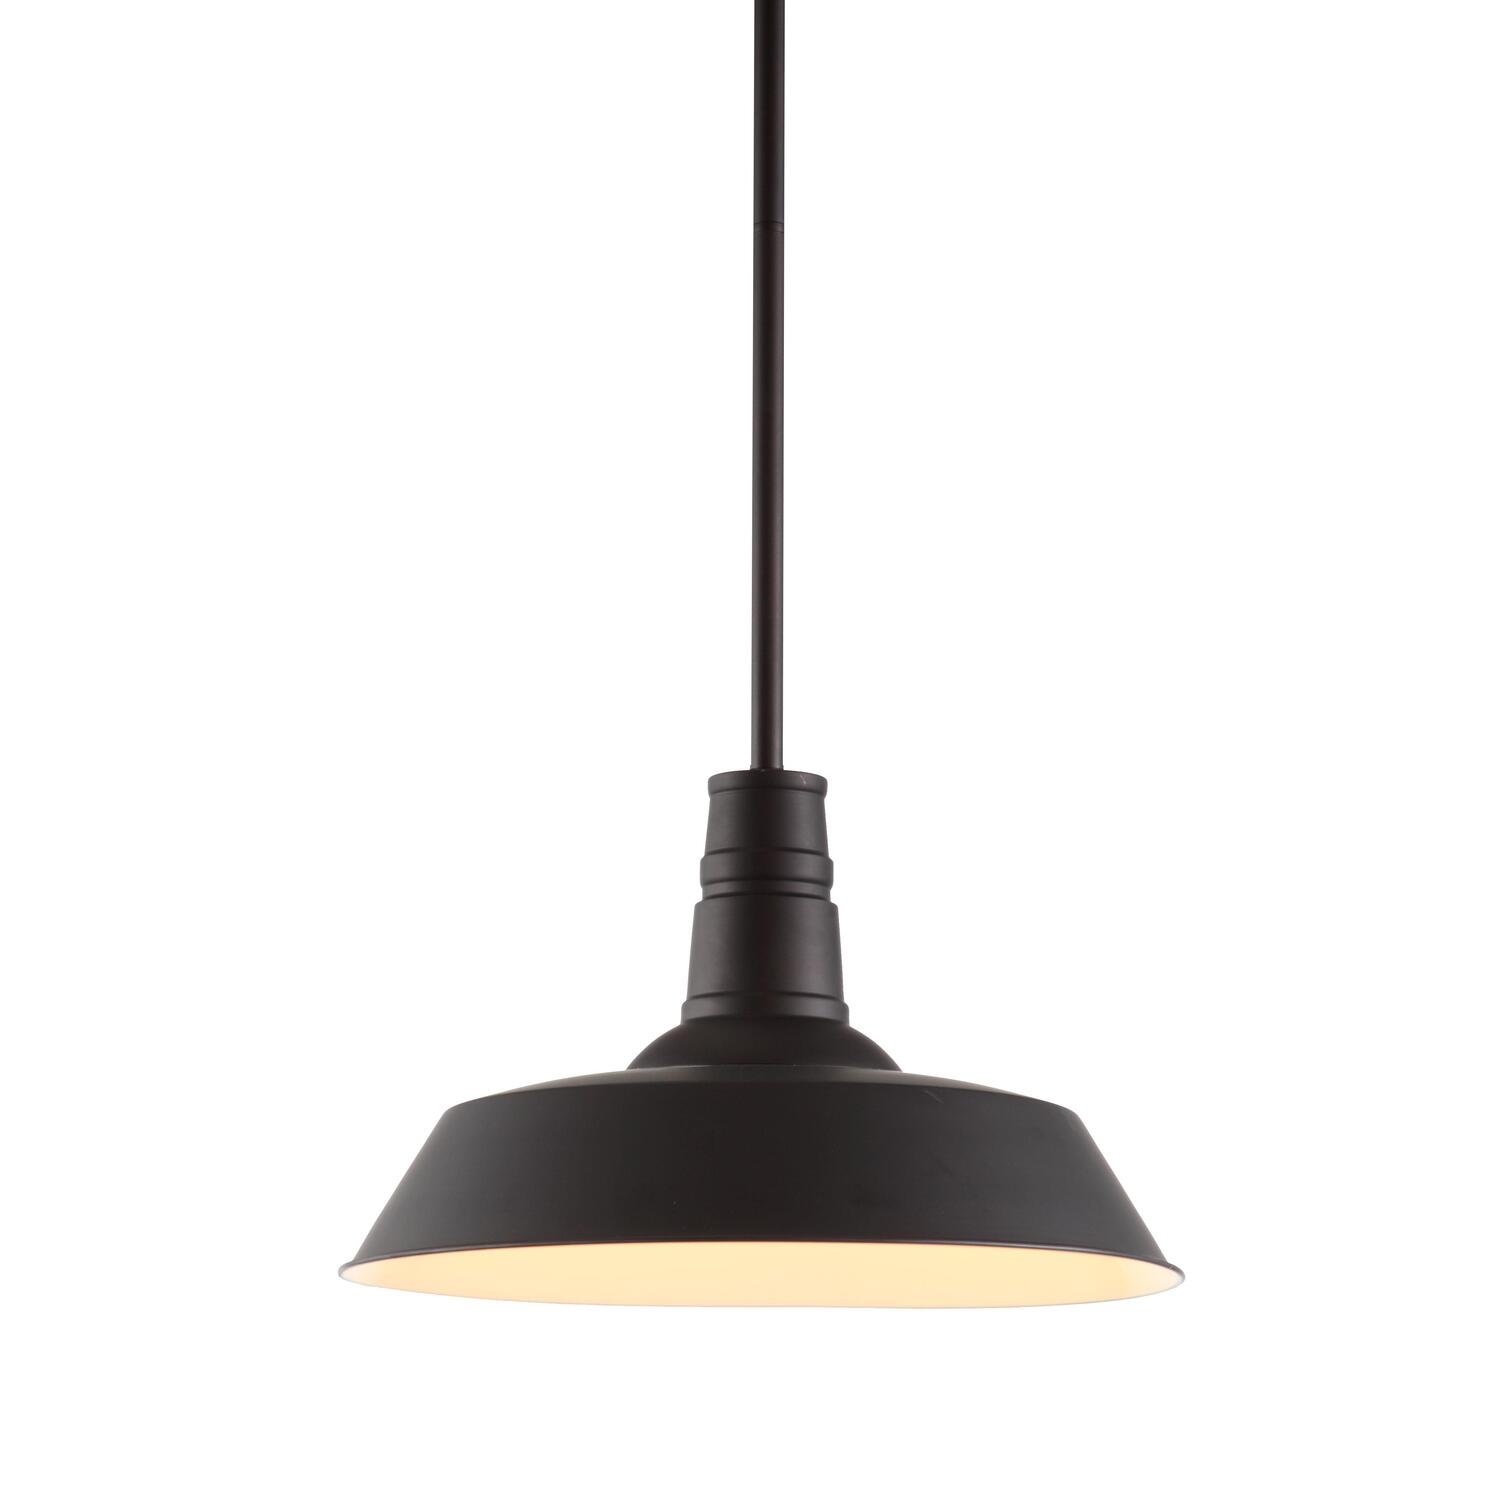 Zuo Modern TIN CEILING LAMP By OJ Commerce 98245